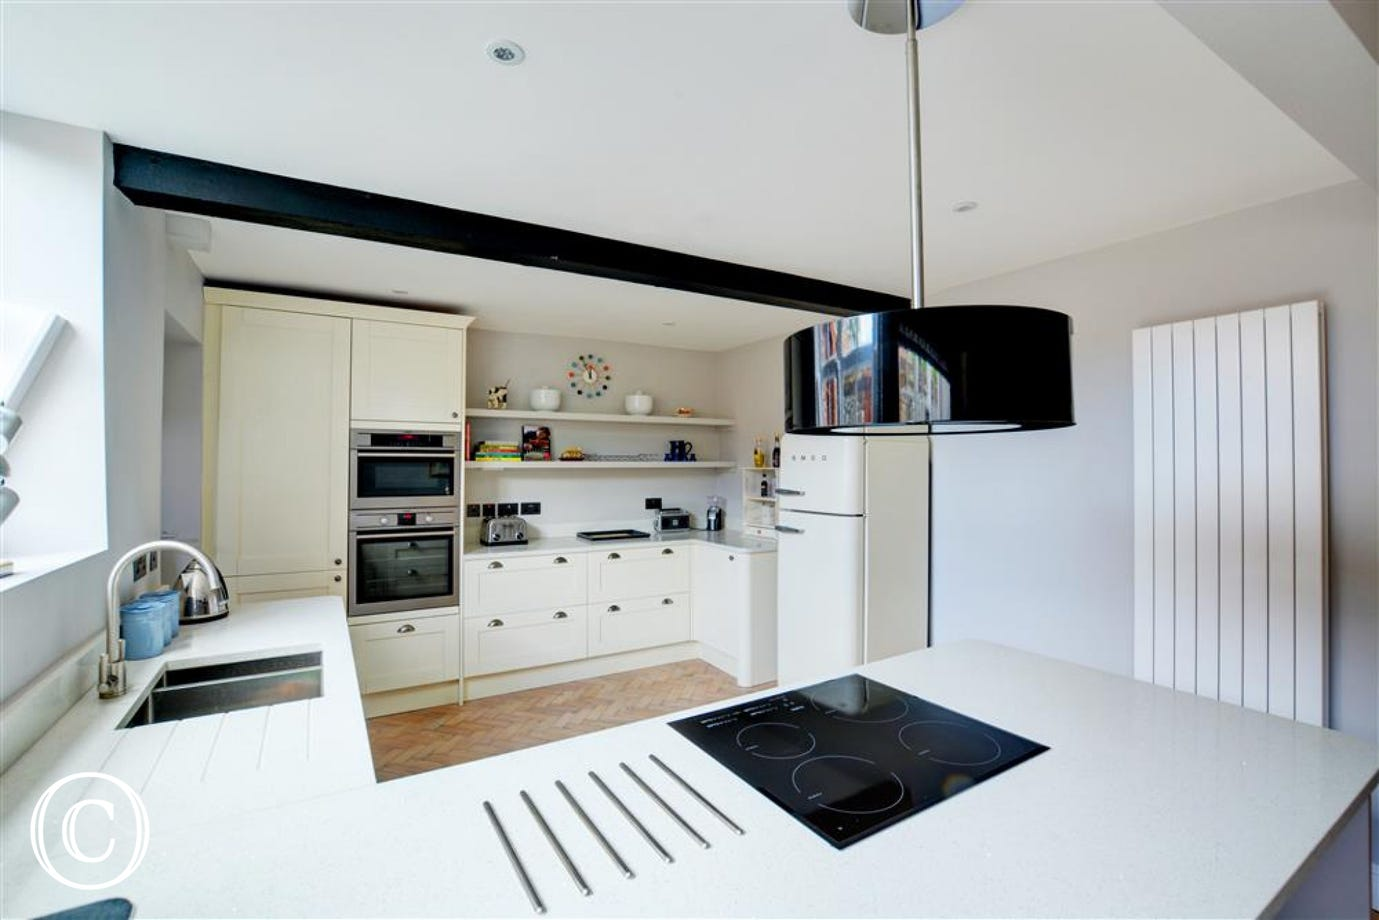 Spacious kitchen with electric hob and oven